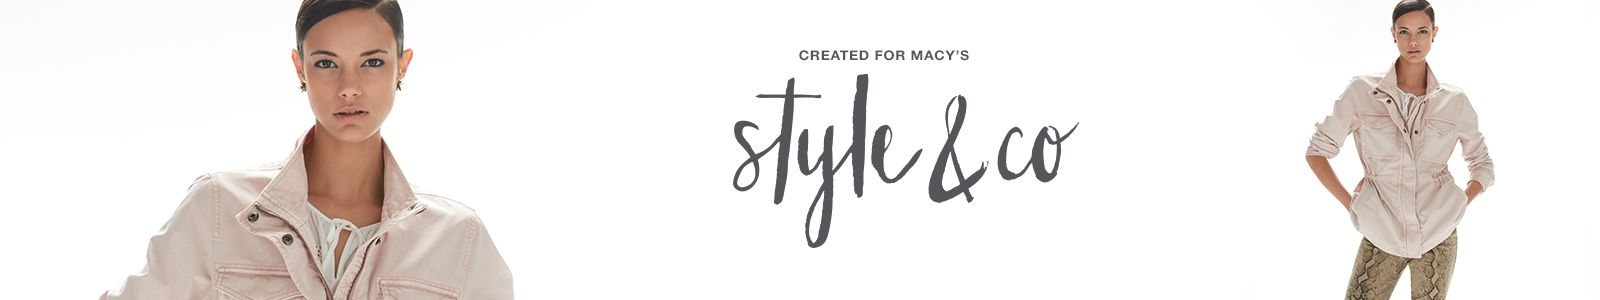 Created for Macys, Style and Co